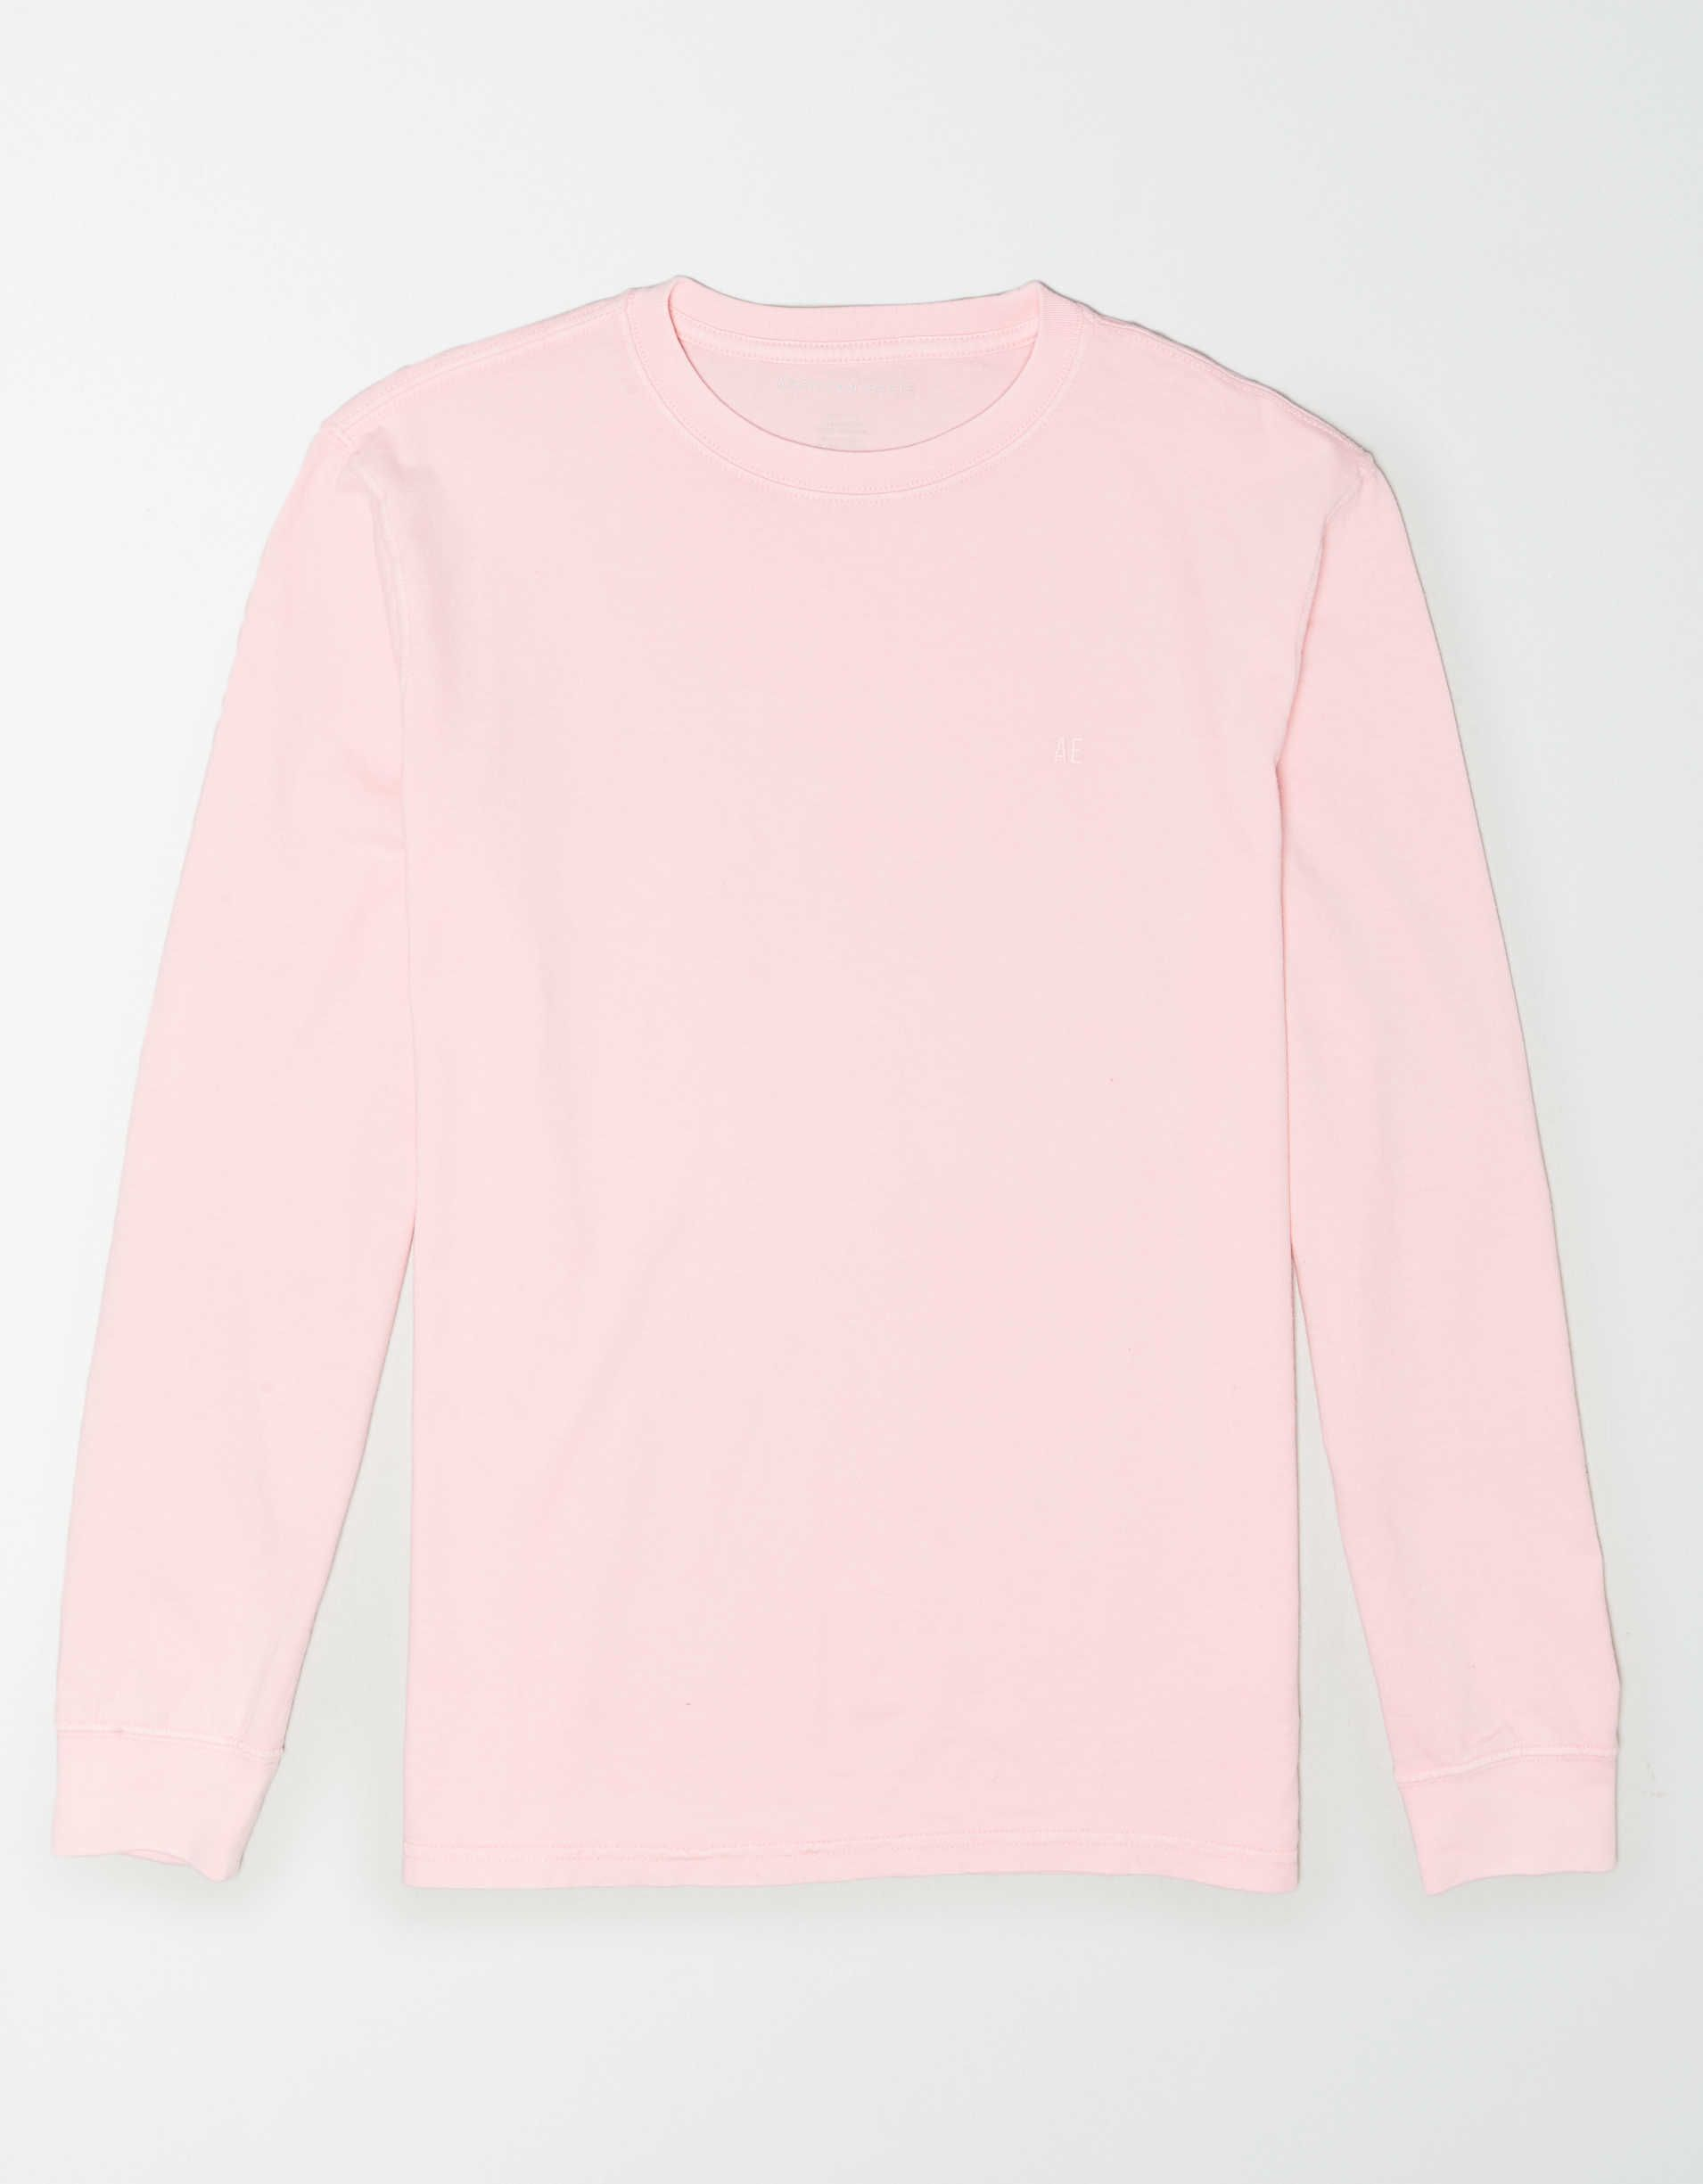 IEason Men Solid Color Long Sleeve Easy Comfy Tops Blouse Daily Clothes Online Store